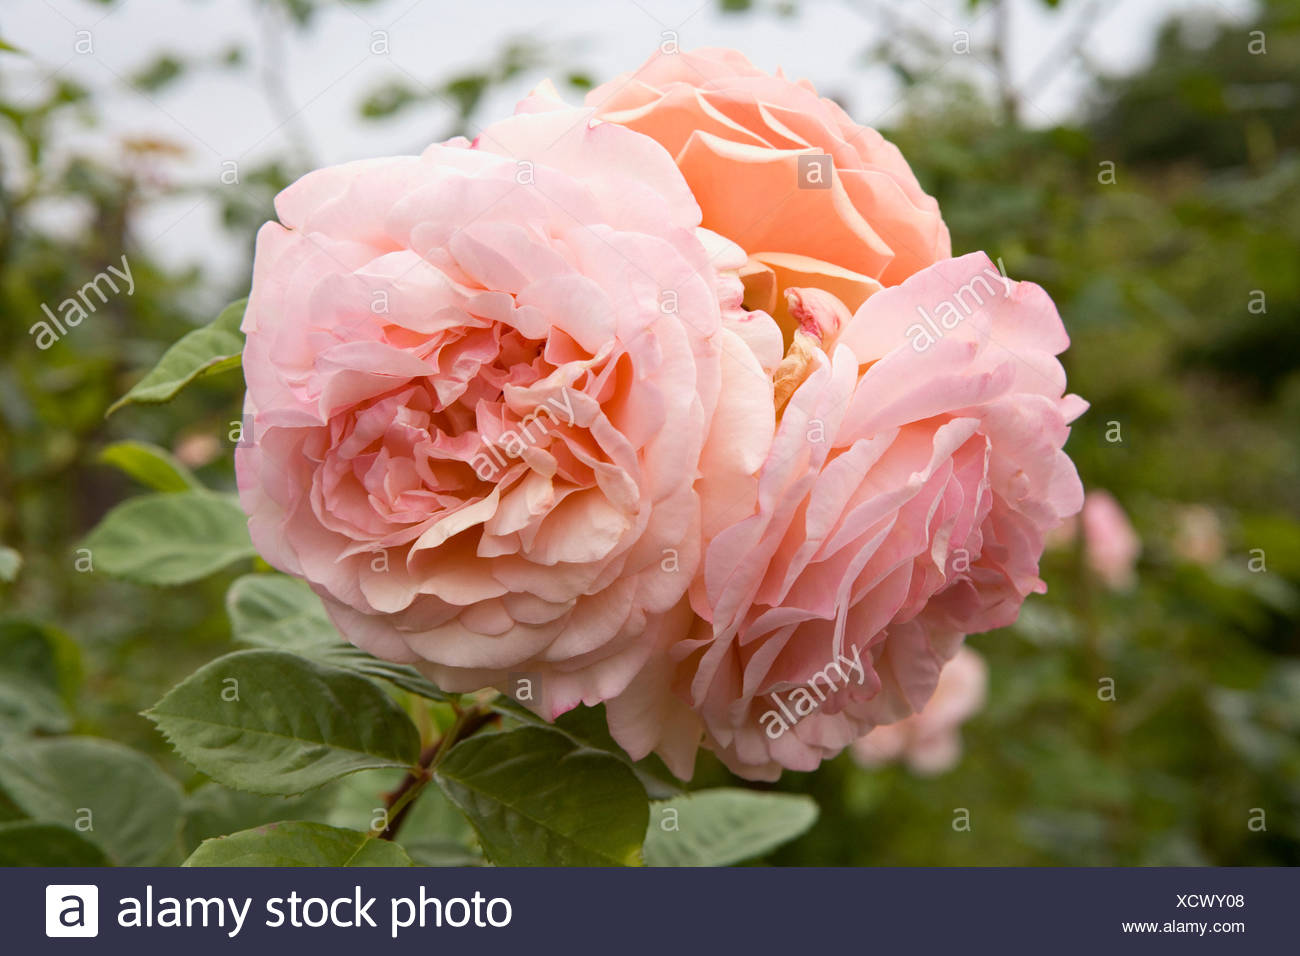 A pink rose - Stock Image